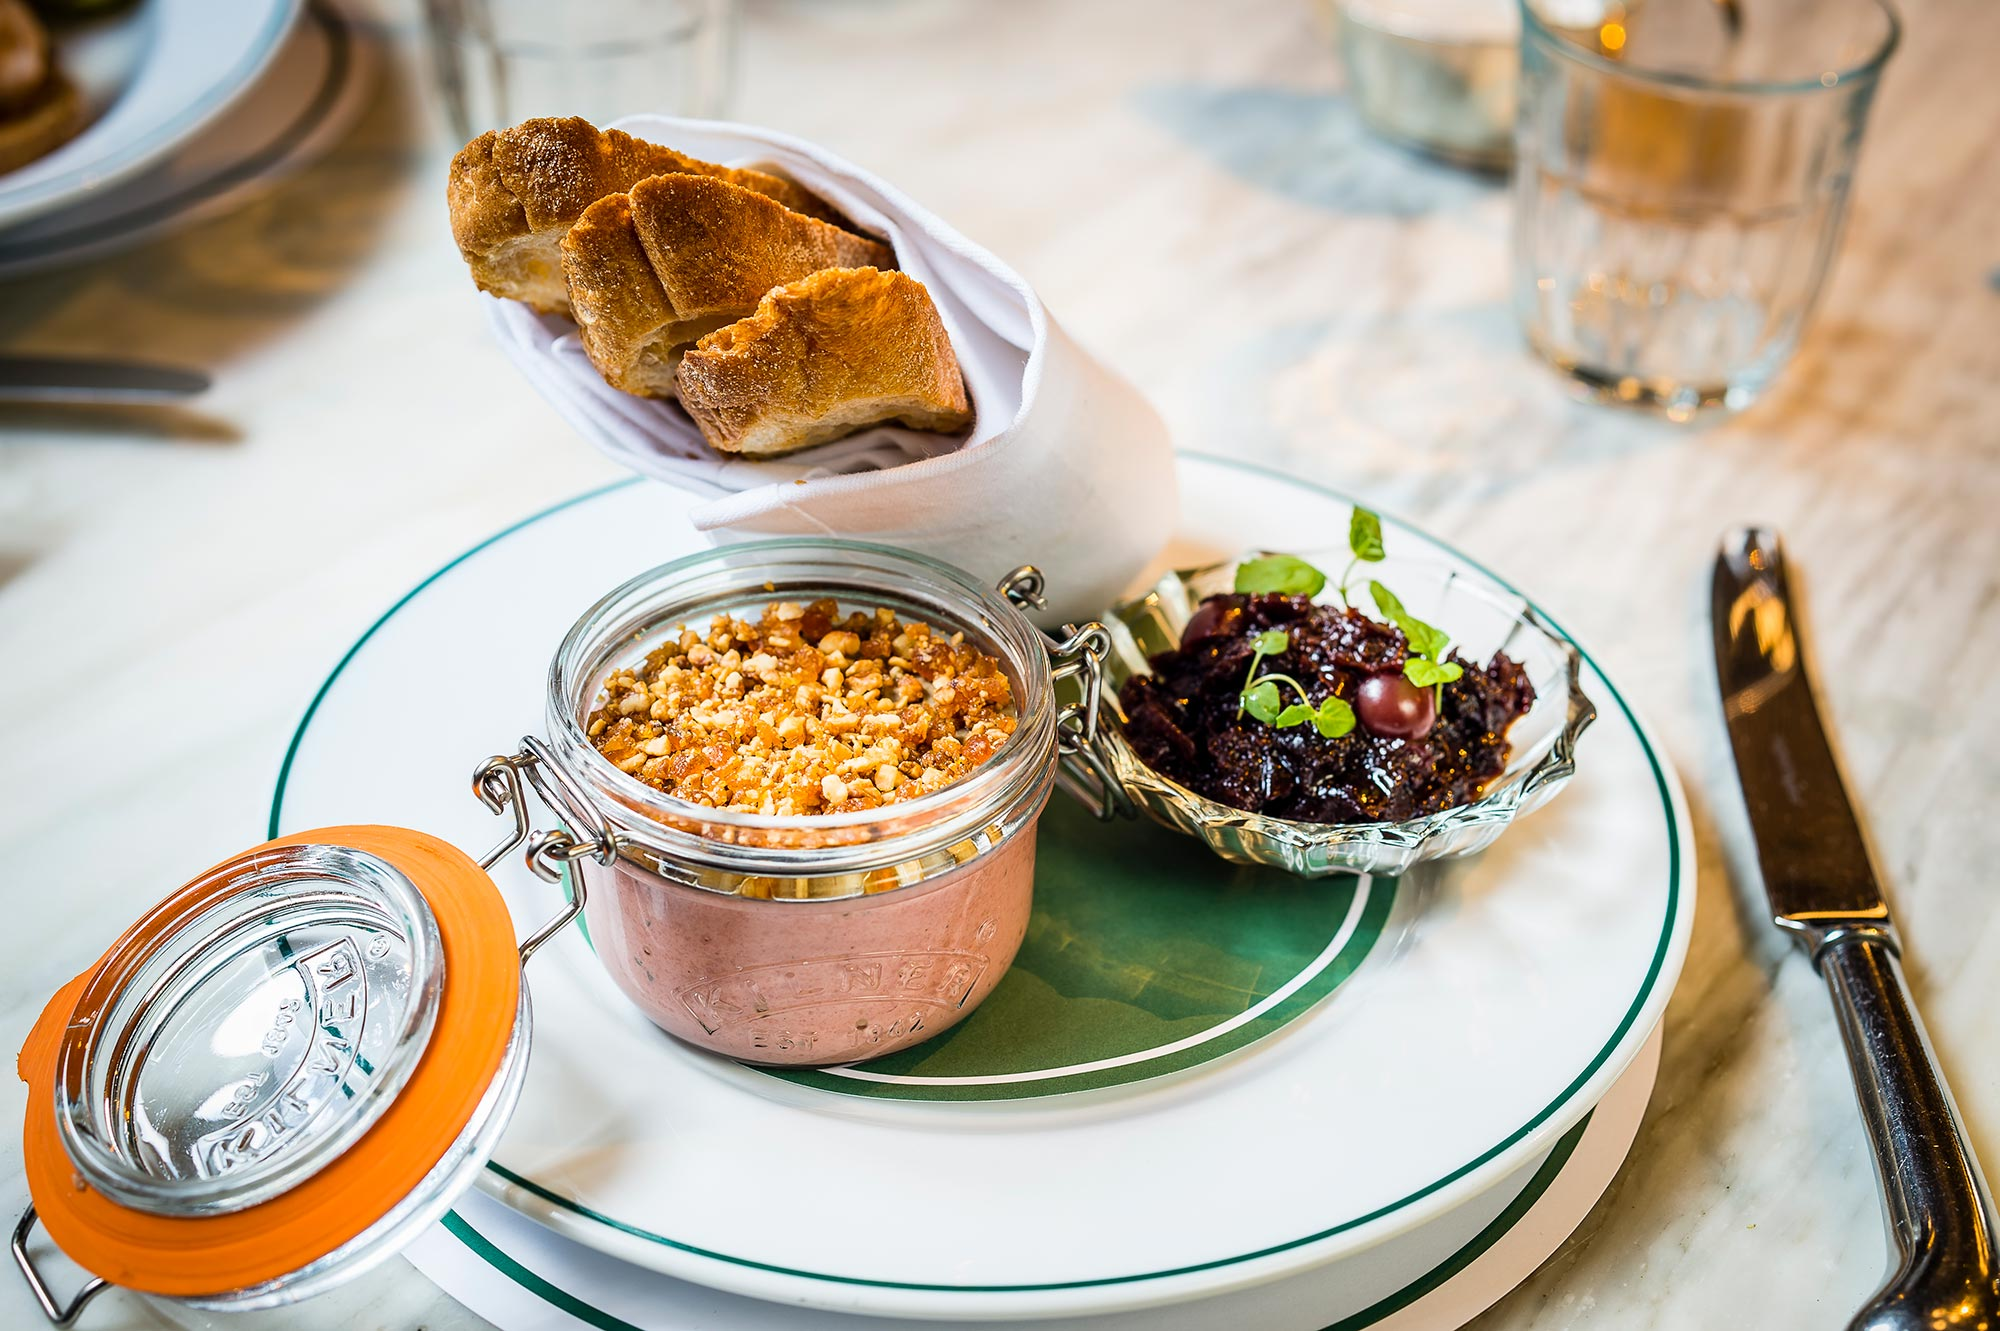 Chicken Liver Parfait at The Ivy Marlow Garden - The Ivy Marlow Garden